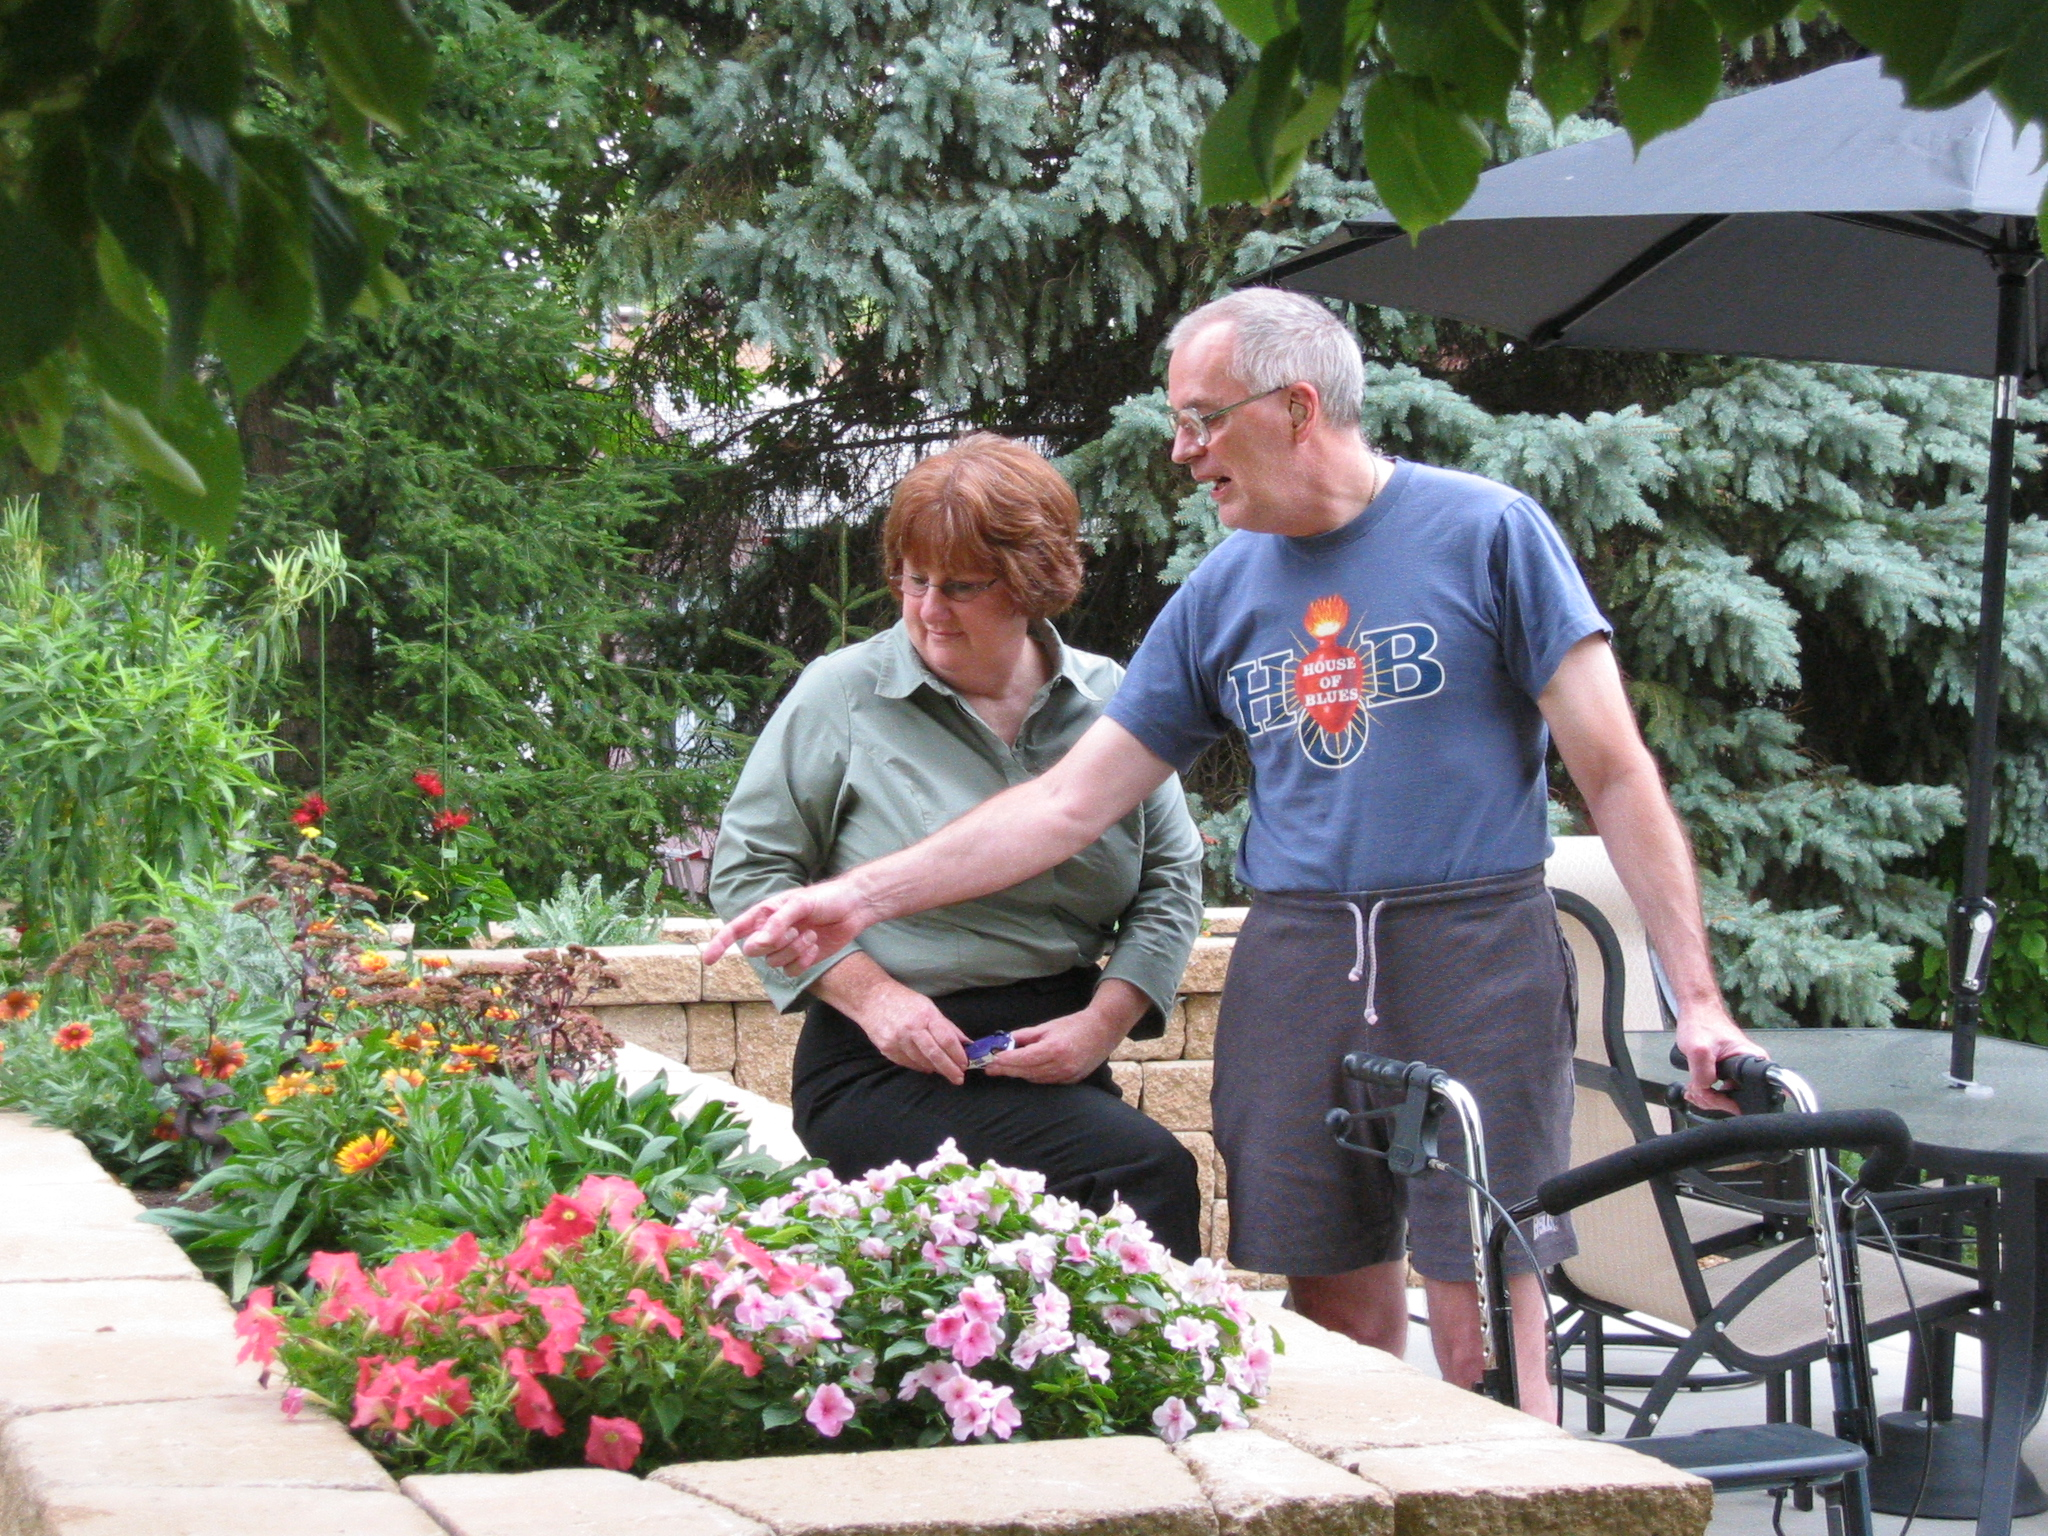 Mike and Ann enjoying their raised garden bed full of colorful flowers.